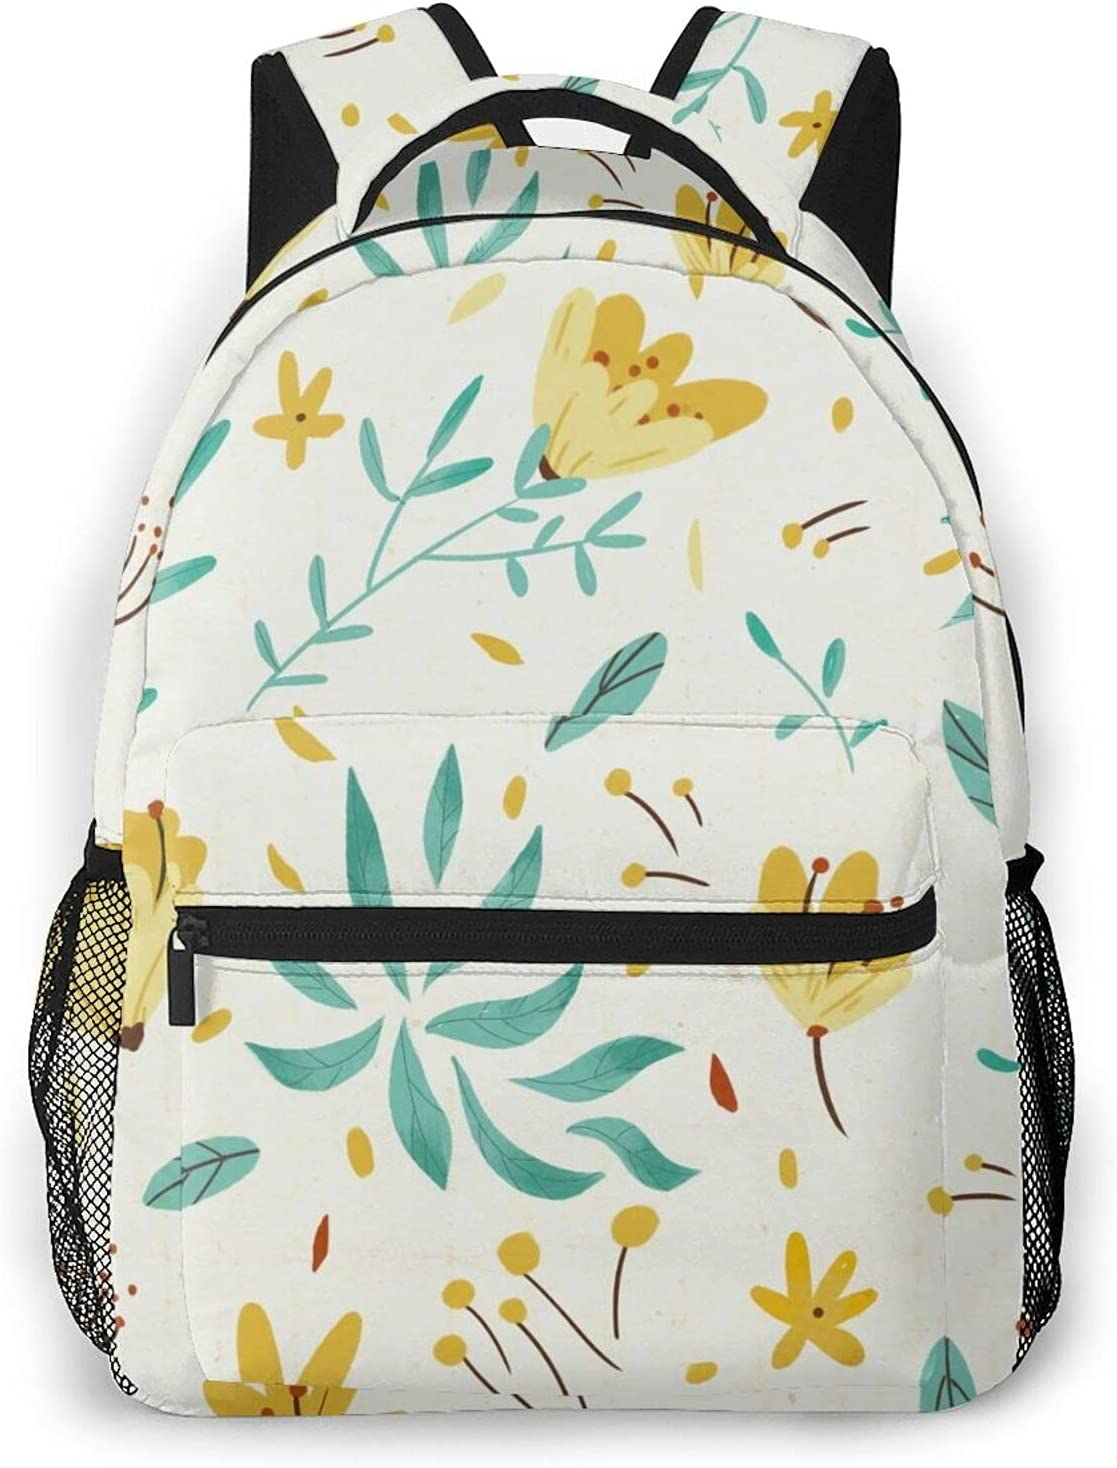 Backpack Unisex School Bag Free shipping anywhere in the nation Ranking TOP10 Fresh Laptop Rucksack Canvas Flowers